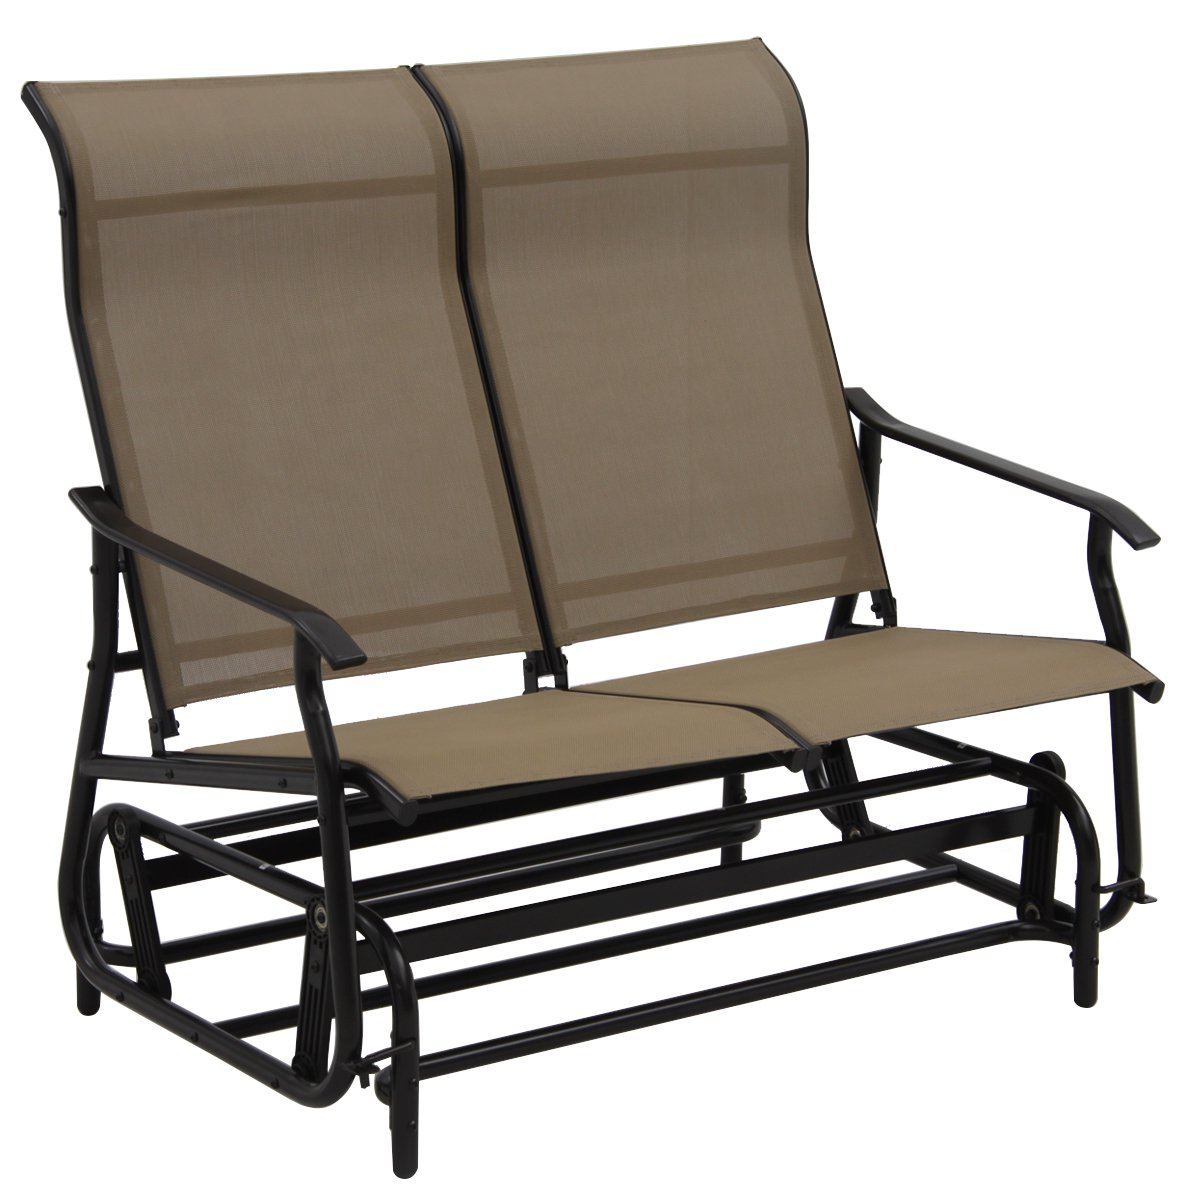 Outdoor Fabric Glider Benches Pertaining To Most Up To Date Giantex Glider Bench Outdoor 2 Person Loveseat Chair Loveseat Armchair Garden Bench Chair (light Brown) (View 4 of 30)